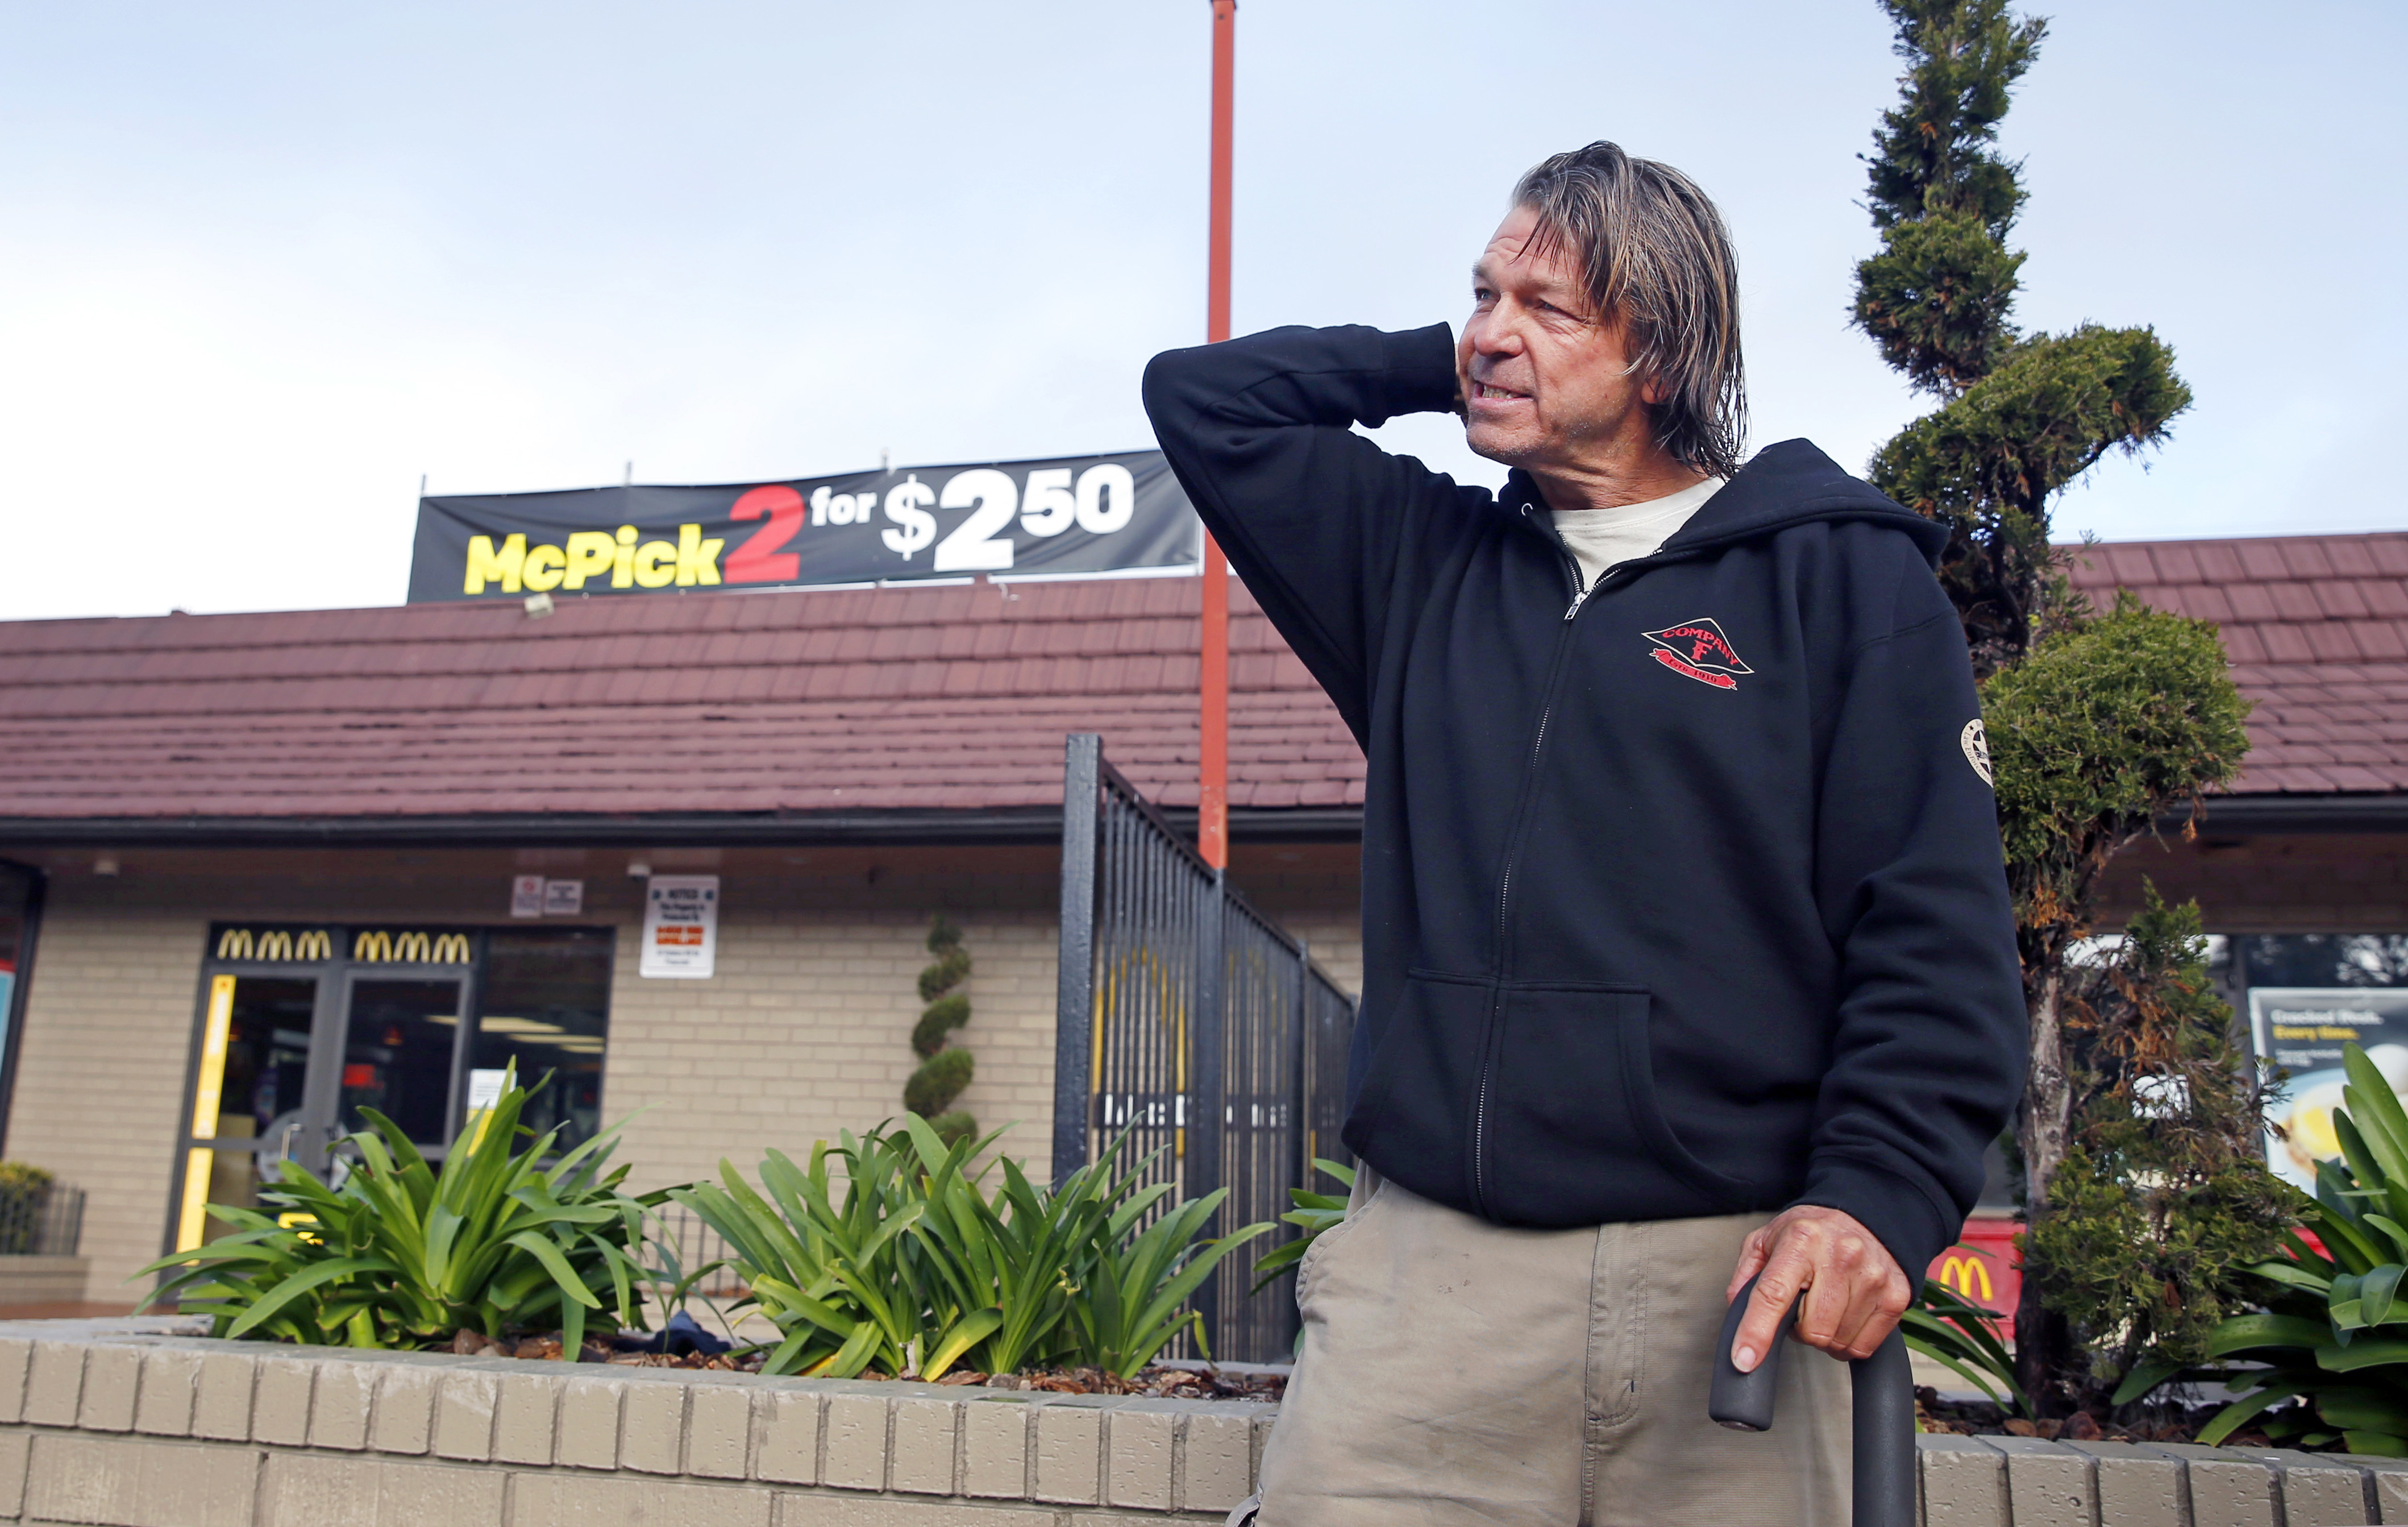 Matthew Hay-Chapman returns to the McDonald's restaurant in San Francisco, where he spotted two of the Orange County jail escapees, on Feb. 2, 2016.